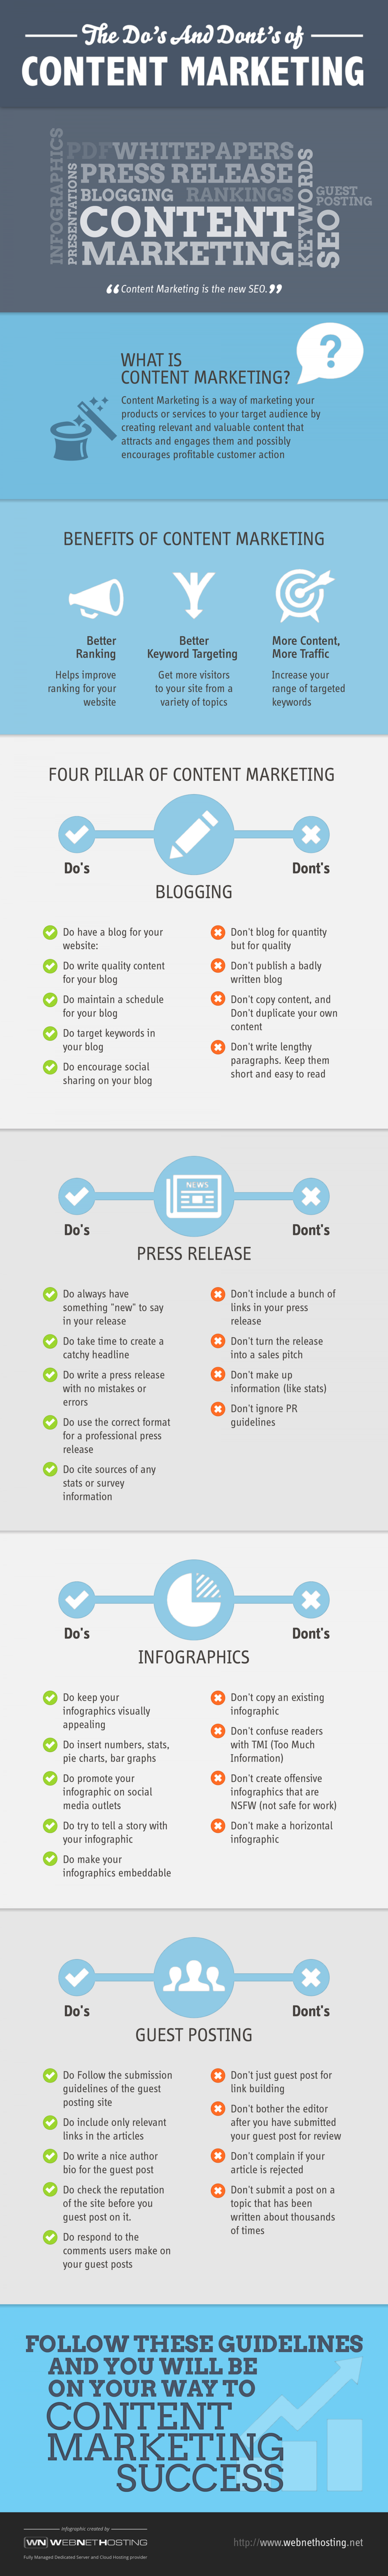 The Do's and Dont's of Content Marketing Infographic